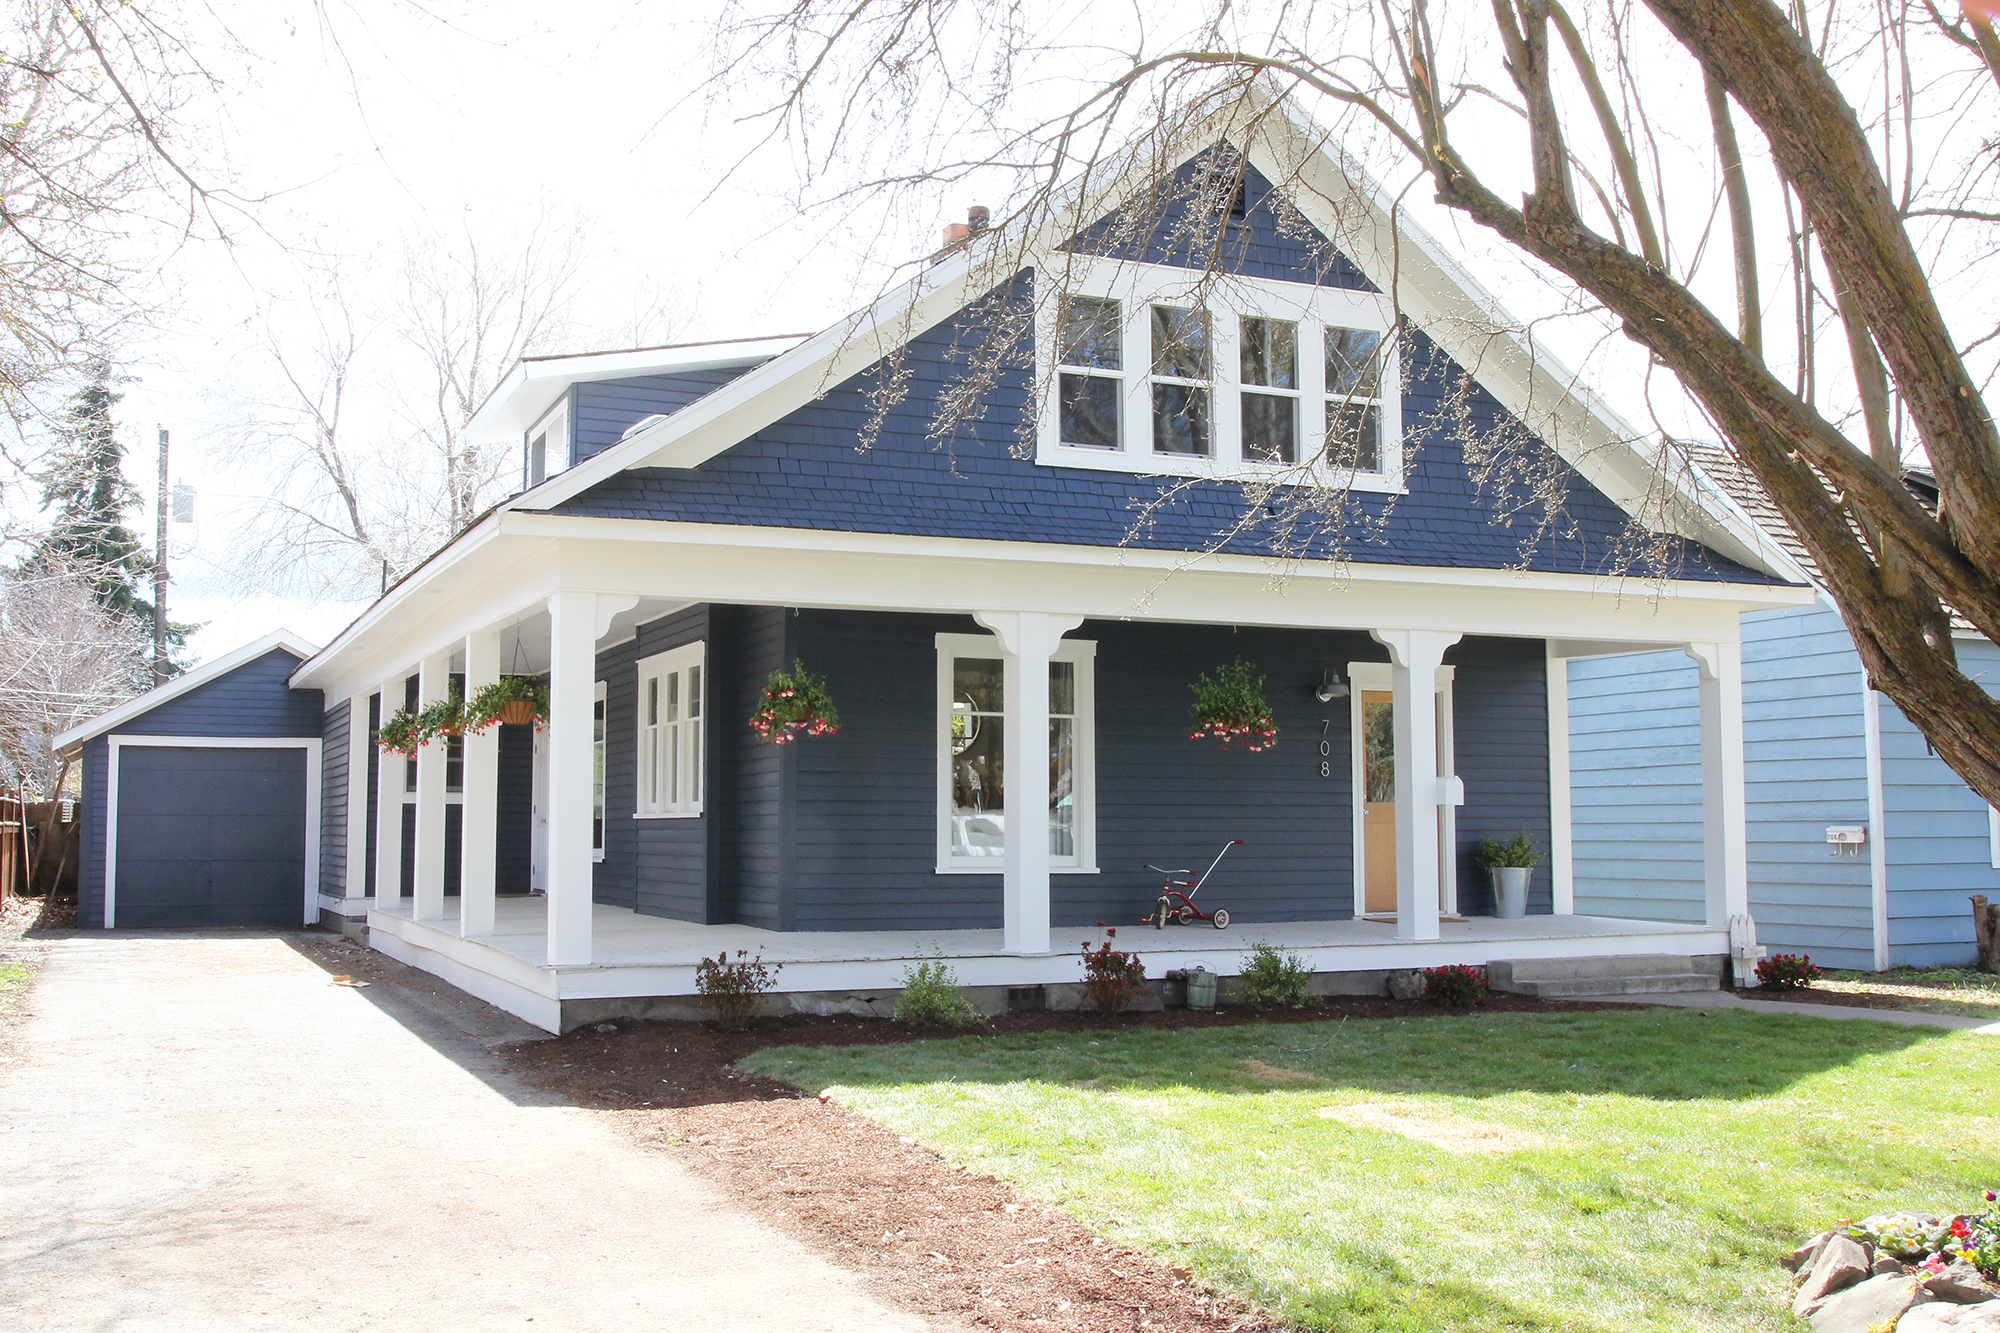 The Grit and Polish - Porch House Front Exterior.jpg